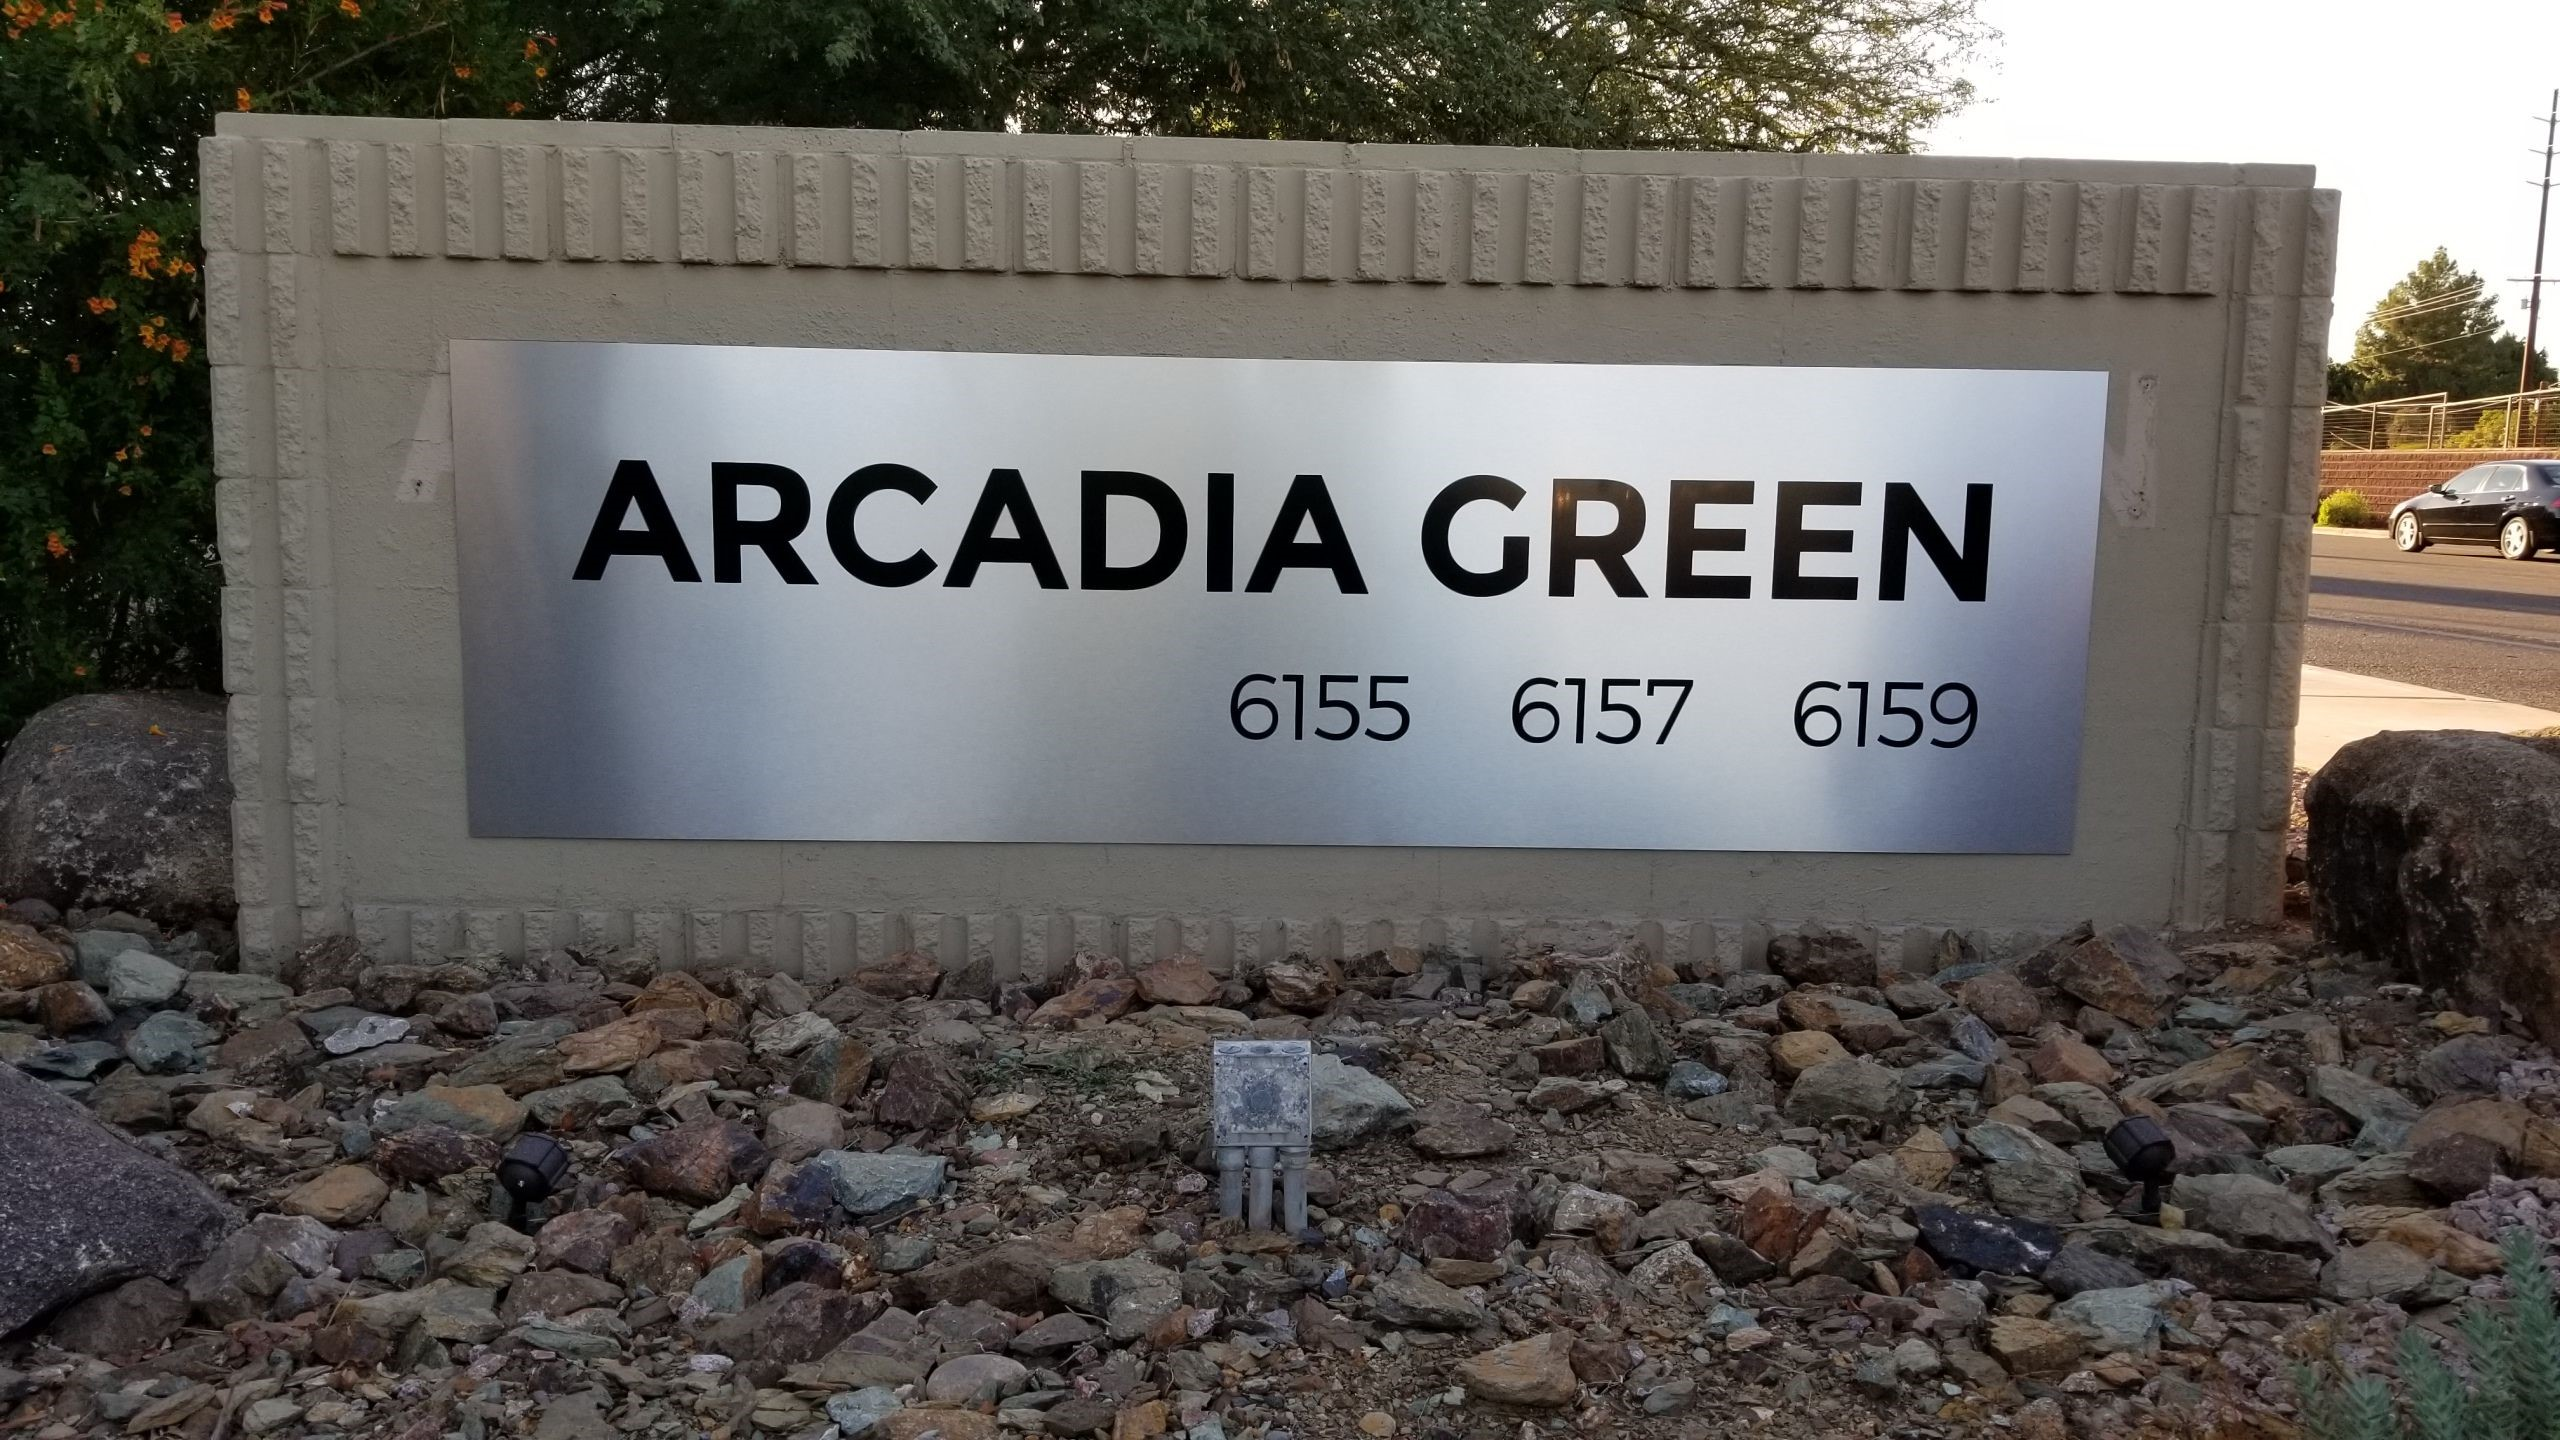 Architectural monument signage Arcadia Green